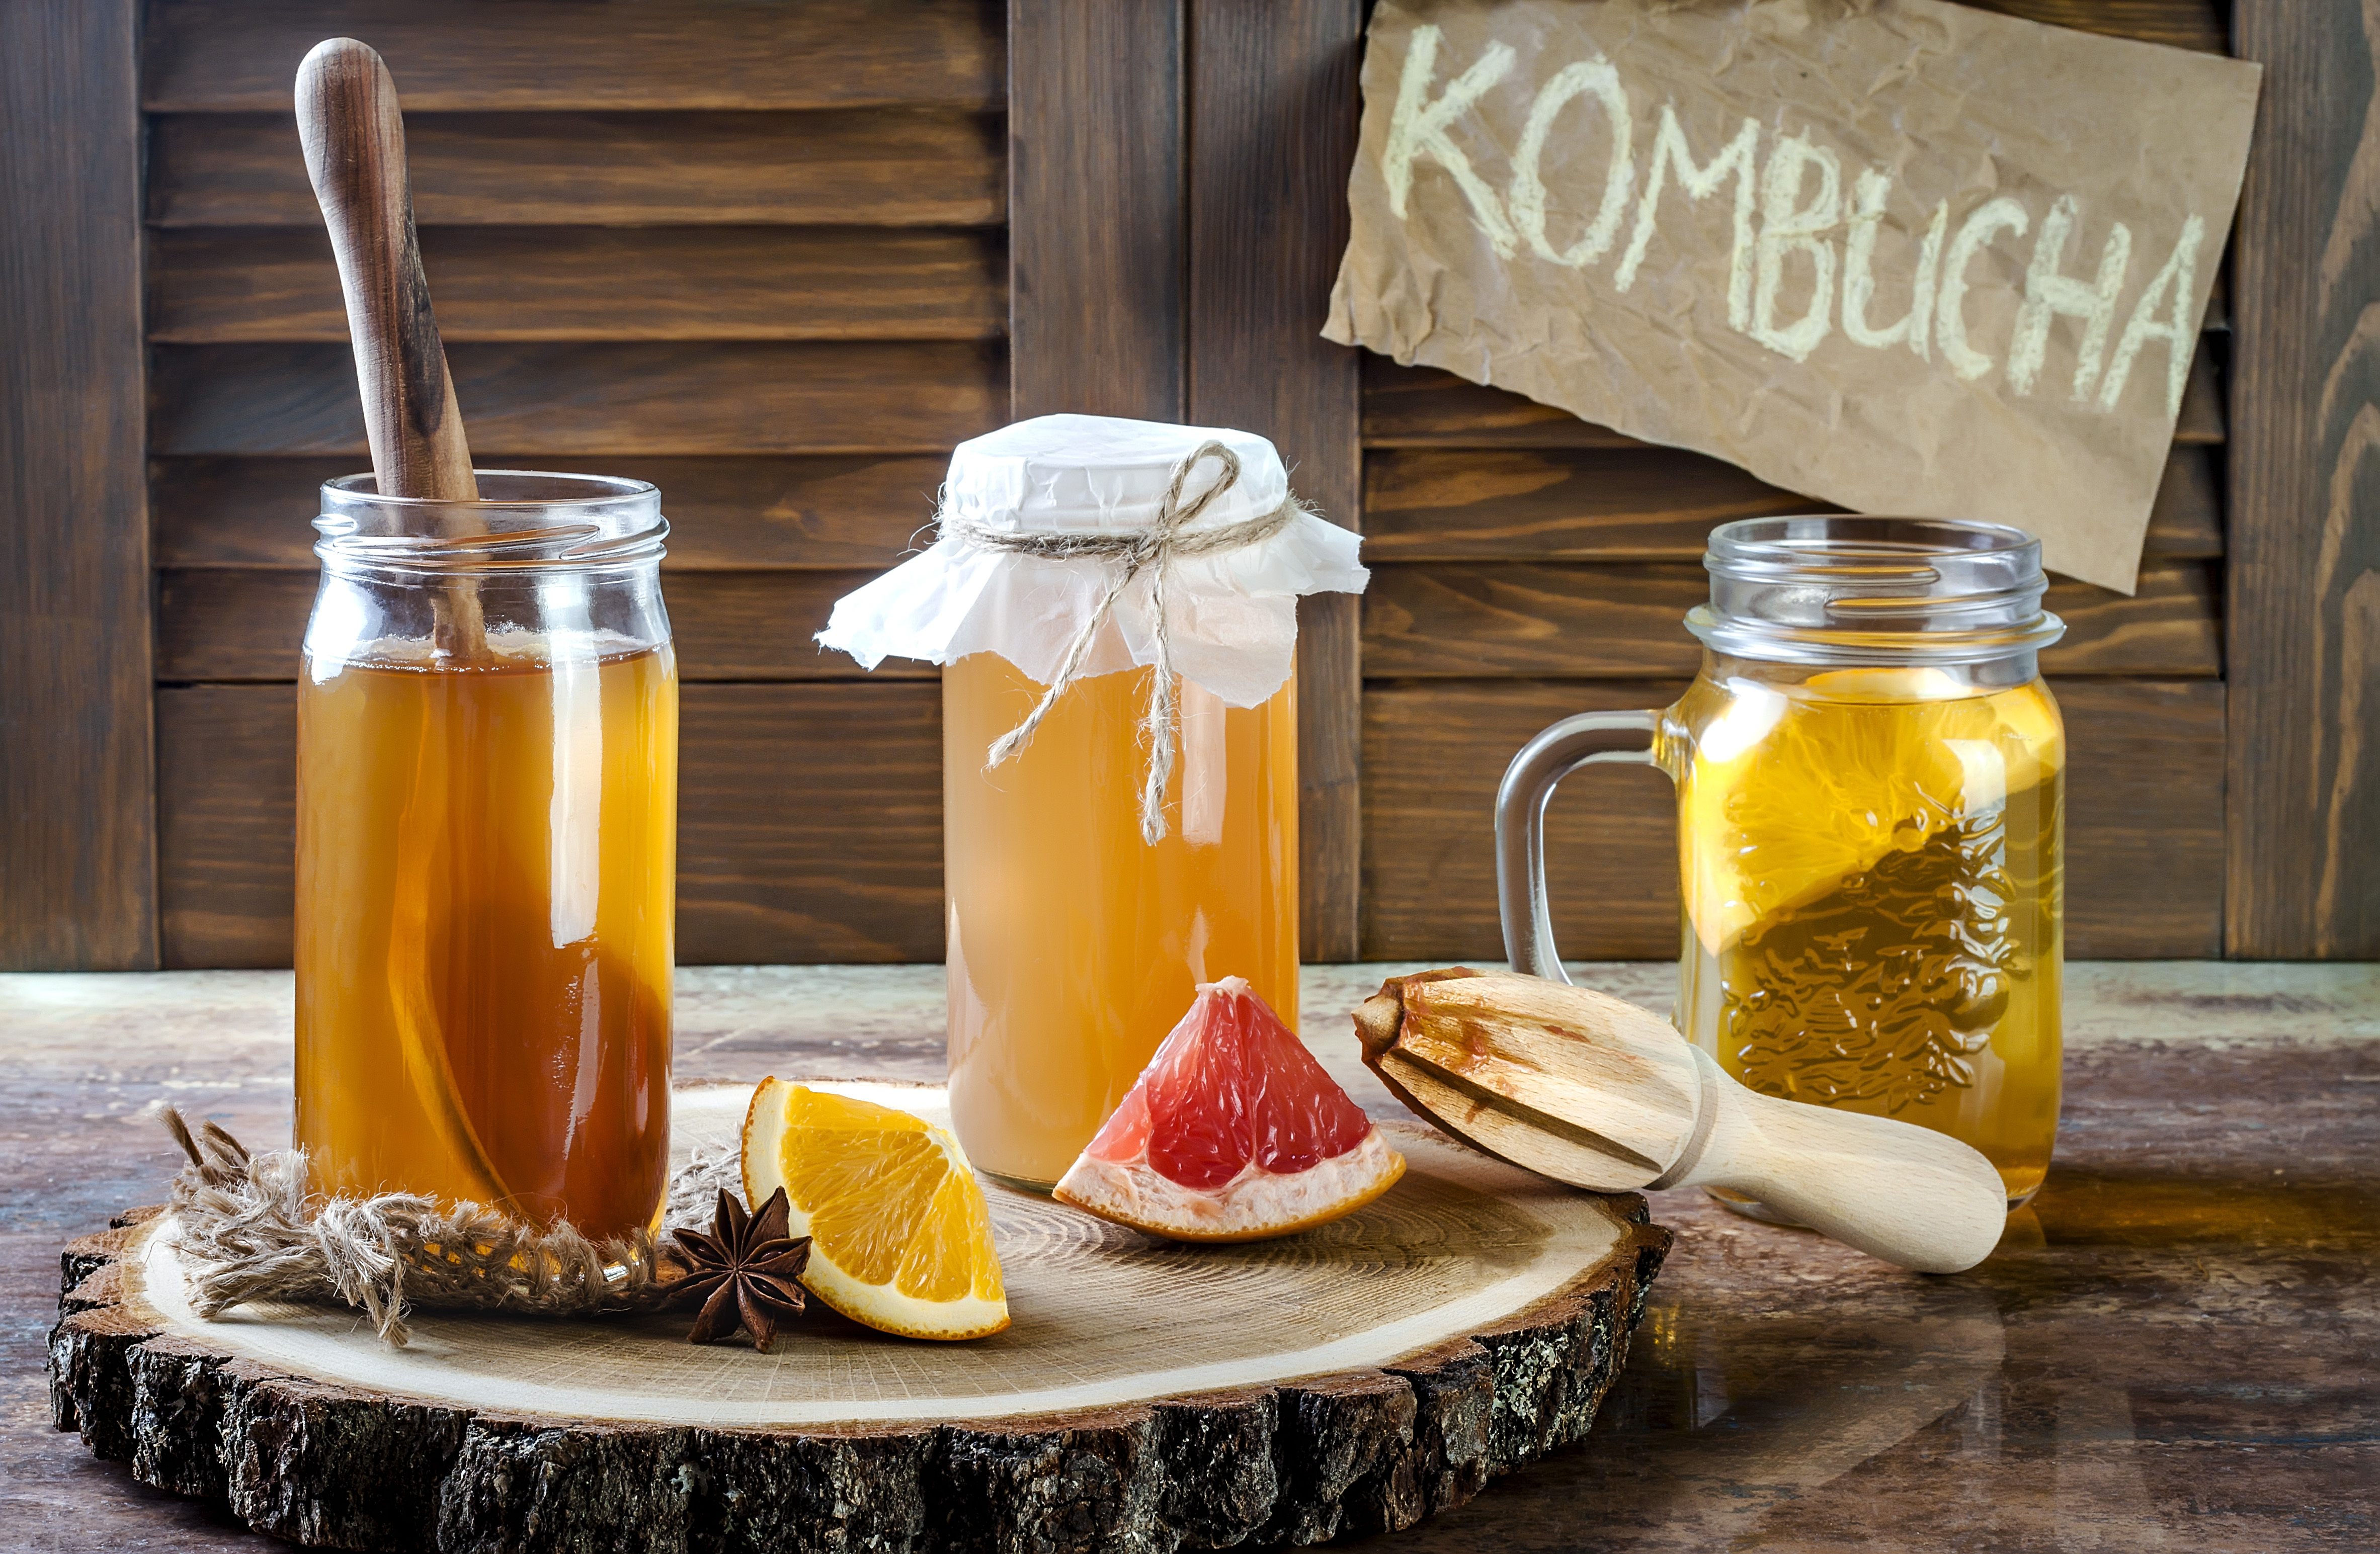 5 great reasons to drink kombucha tea, backed by science